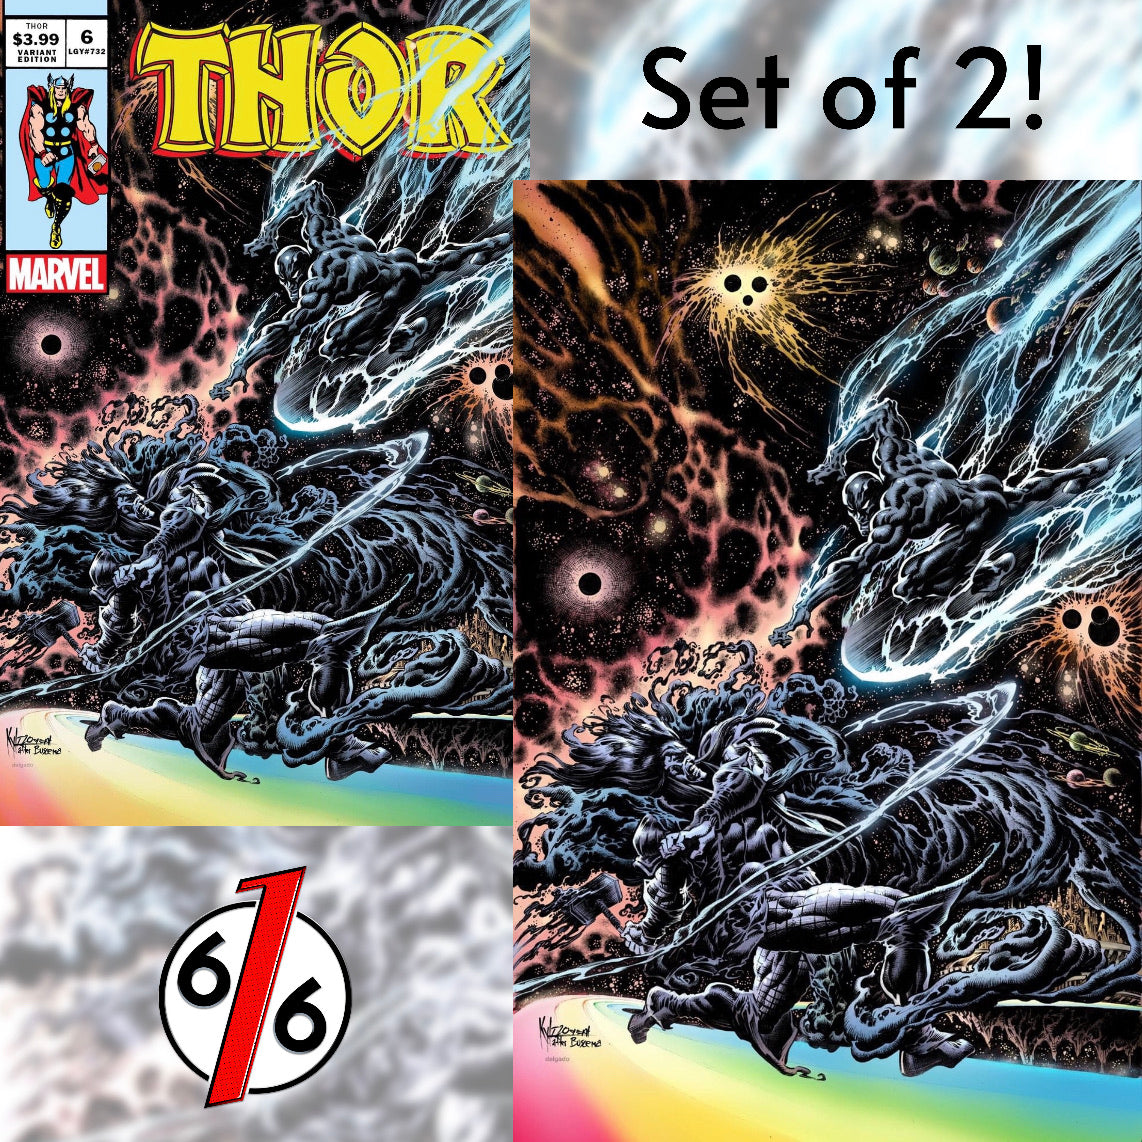 THOR #6 KYLE HOTZ Homage Set of 2 Exclusive Variants Black Winter